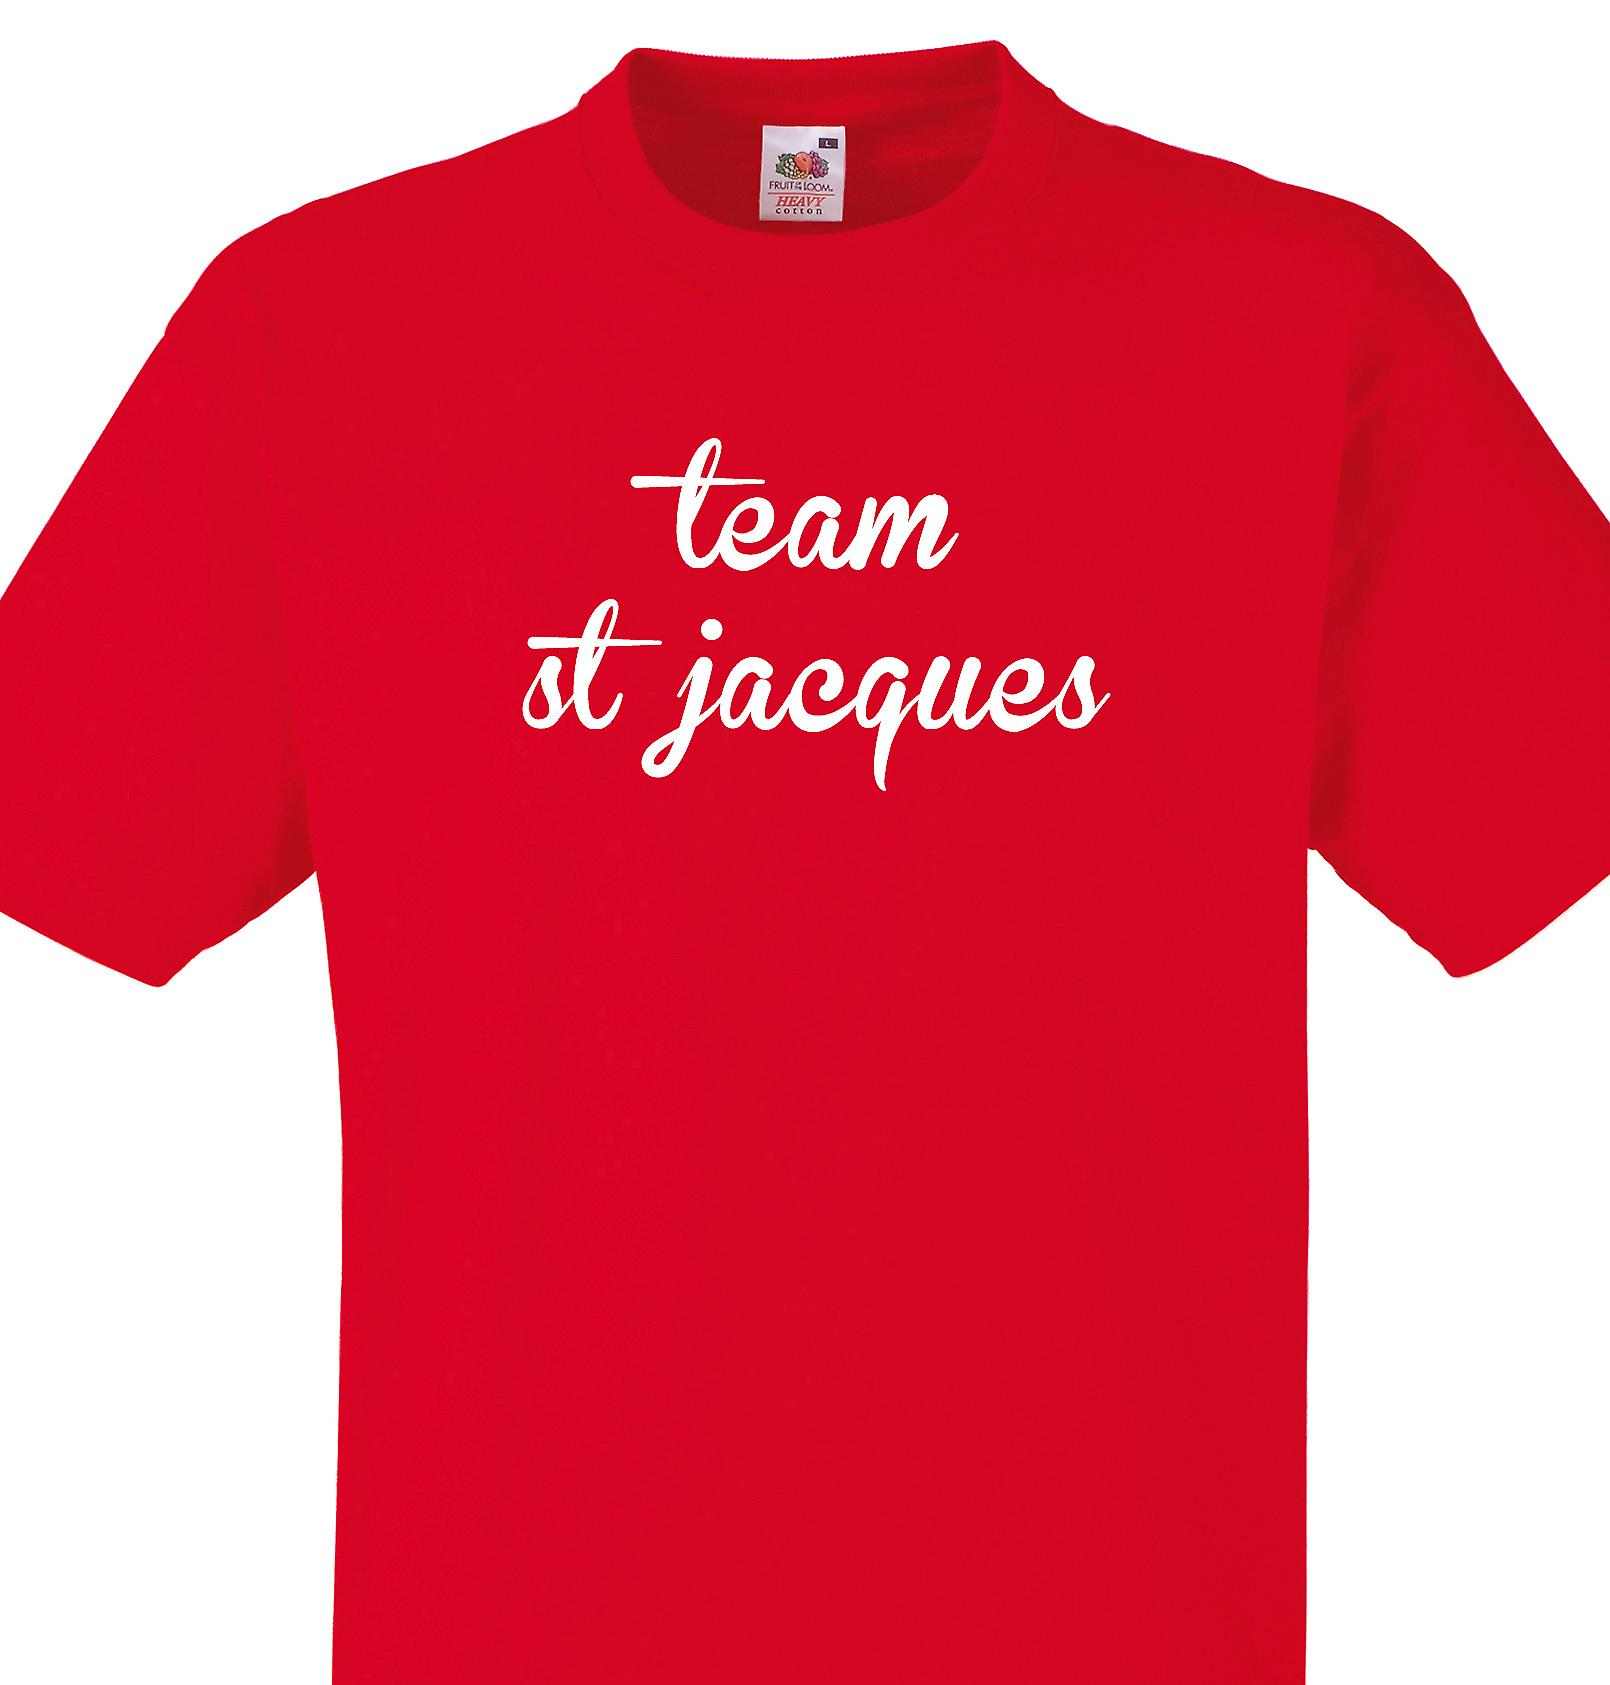 Team St jacques Red T shirt